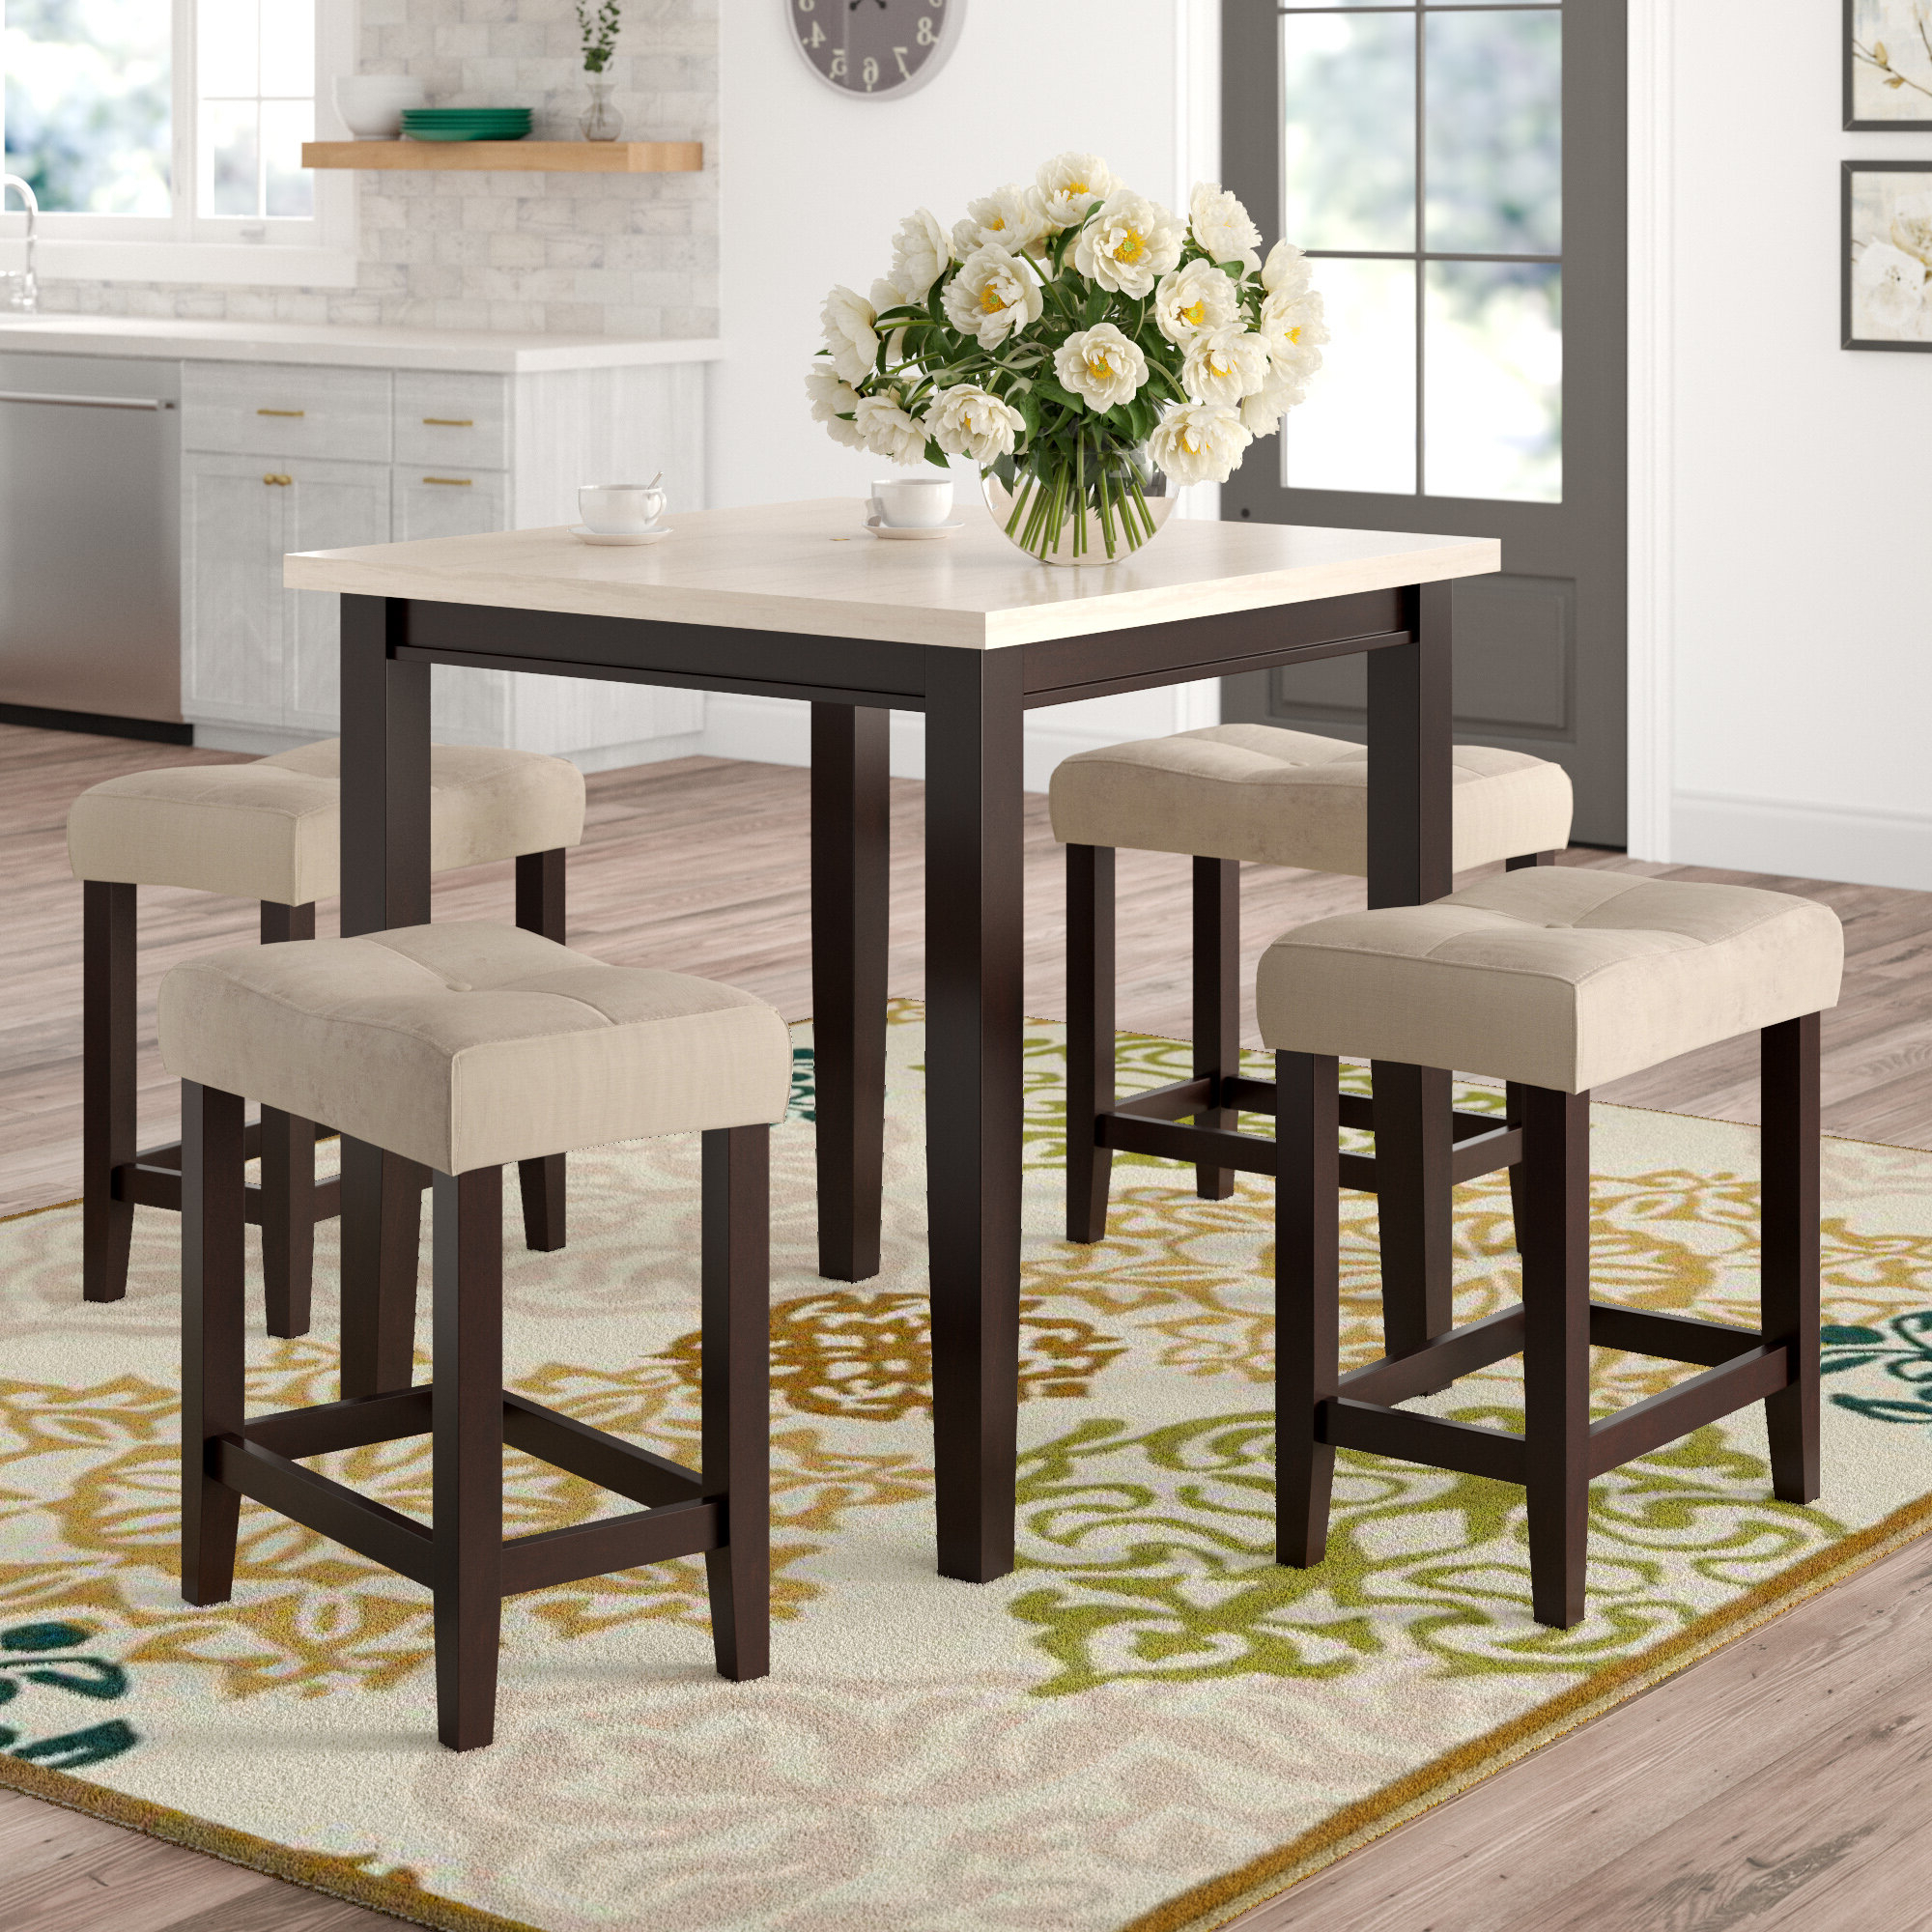 Current Winsted 4 Piece Counter Height Dining Sets With Regard To Red Barrel Studio Skeens 5 Piece Counter Height Dining Set & Reviews (View 5 of 25)